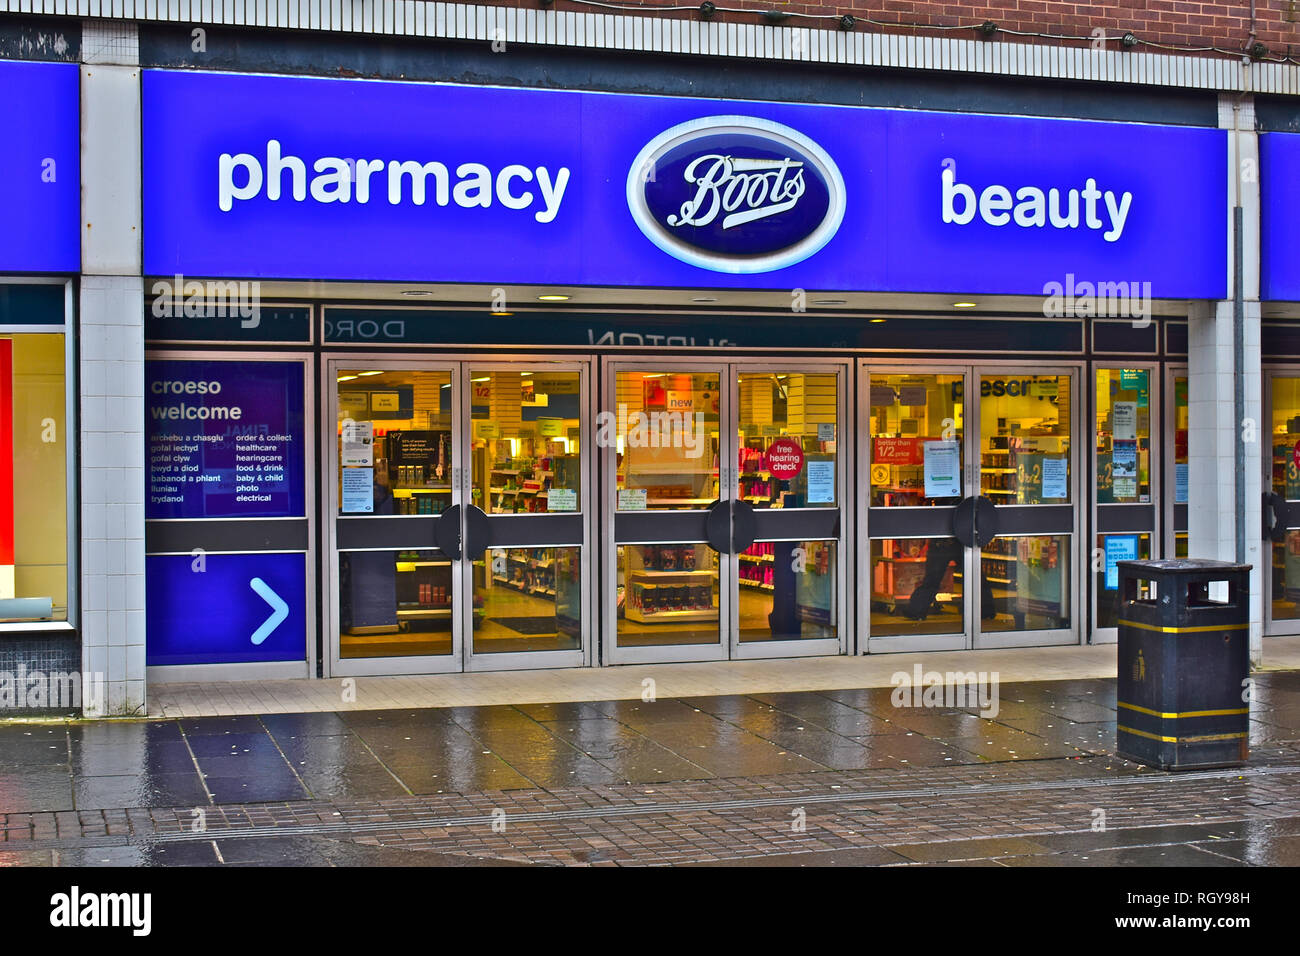 The Caroline Street Branch of Boots the Chemists in the Town Centre, Bridgend, S.Wales UK - Stock Image